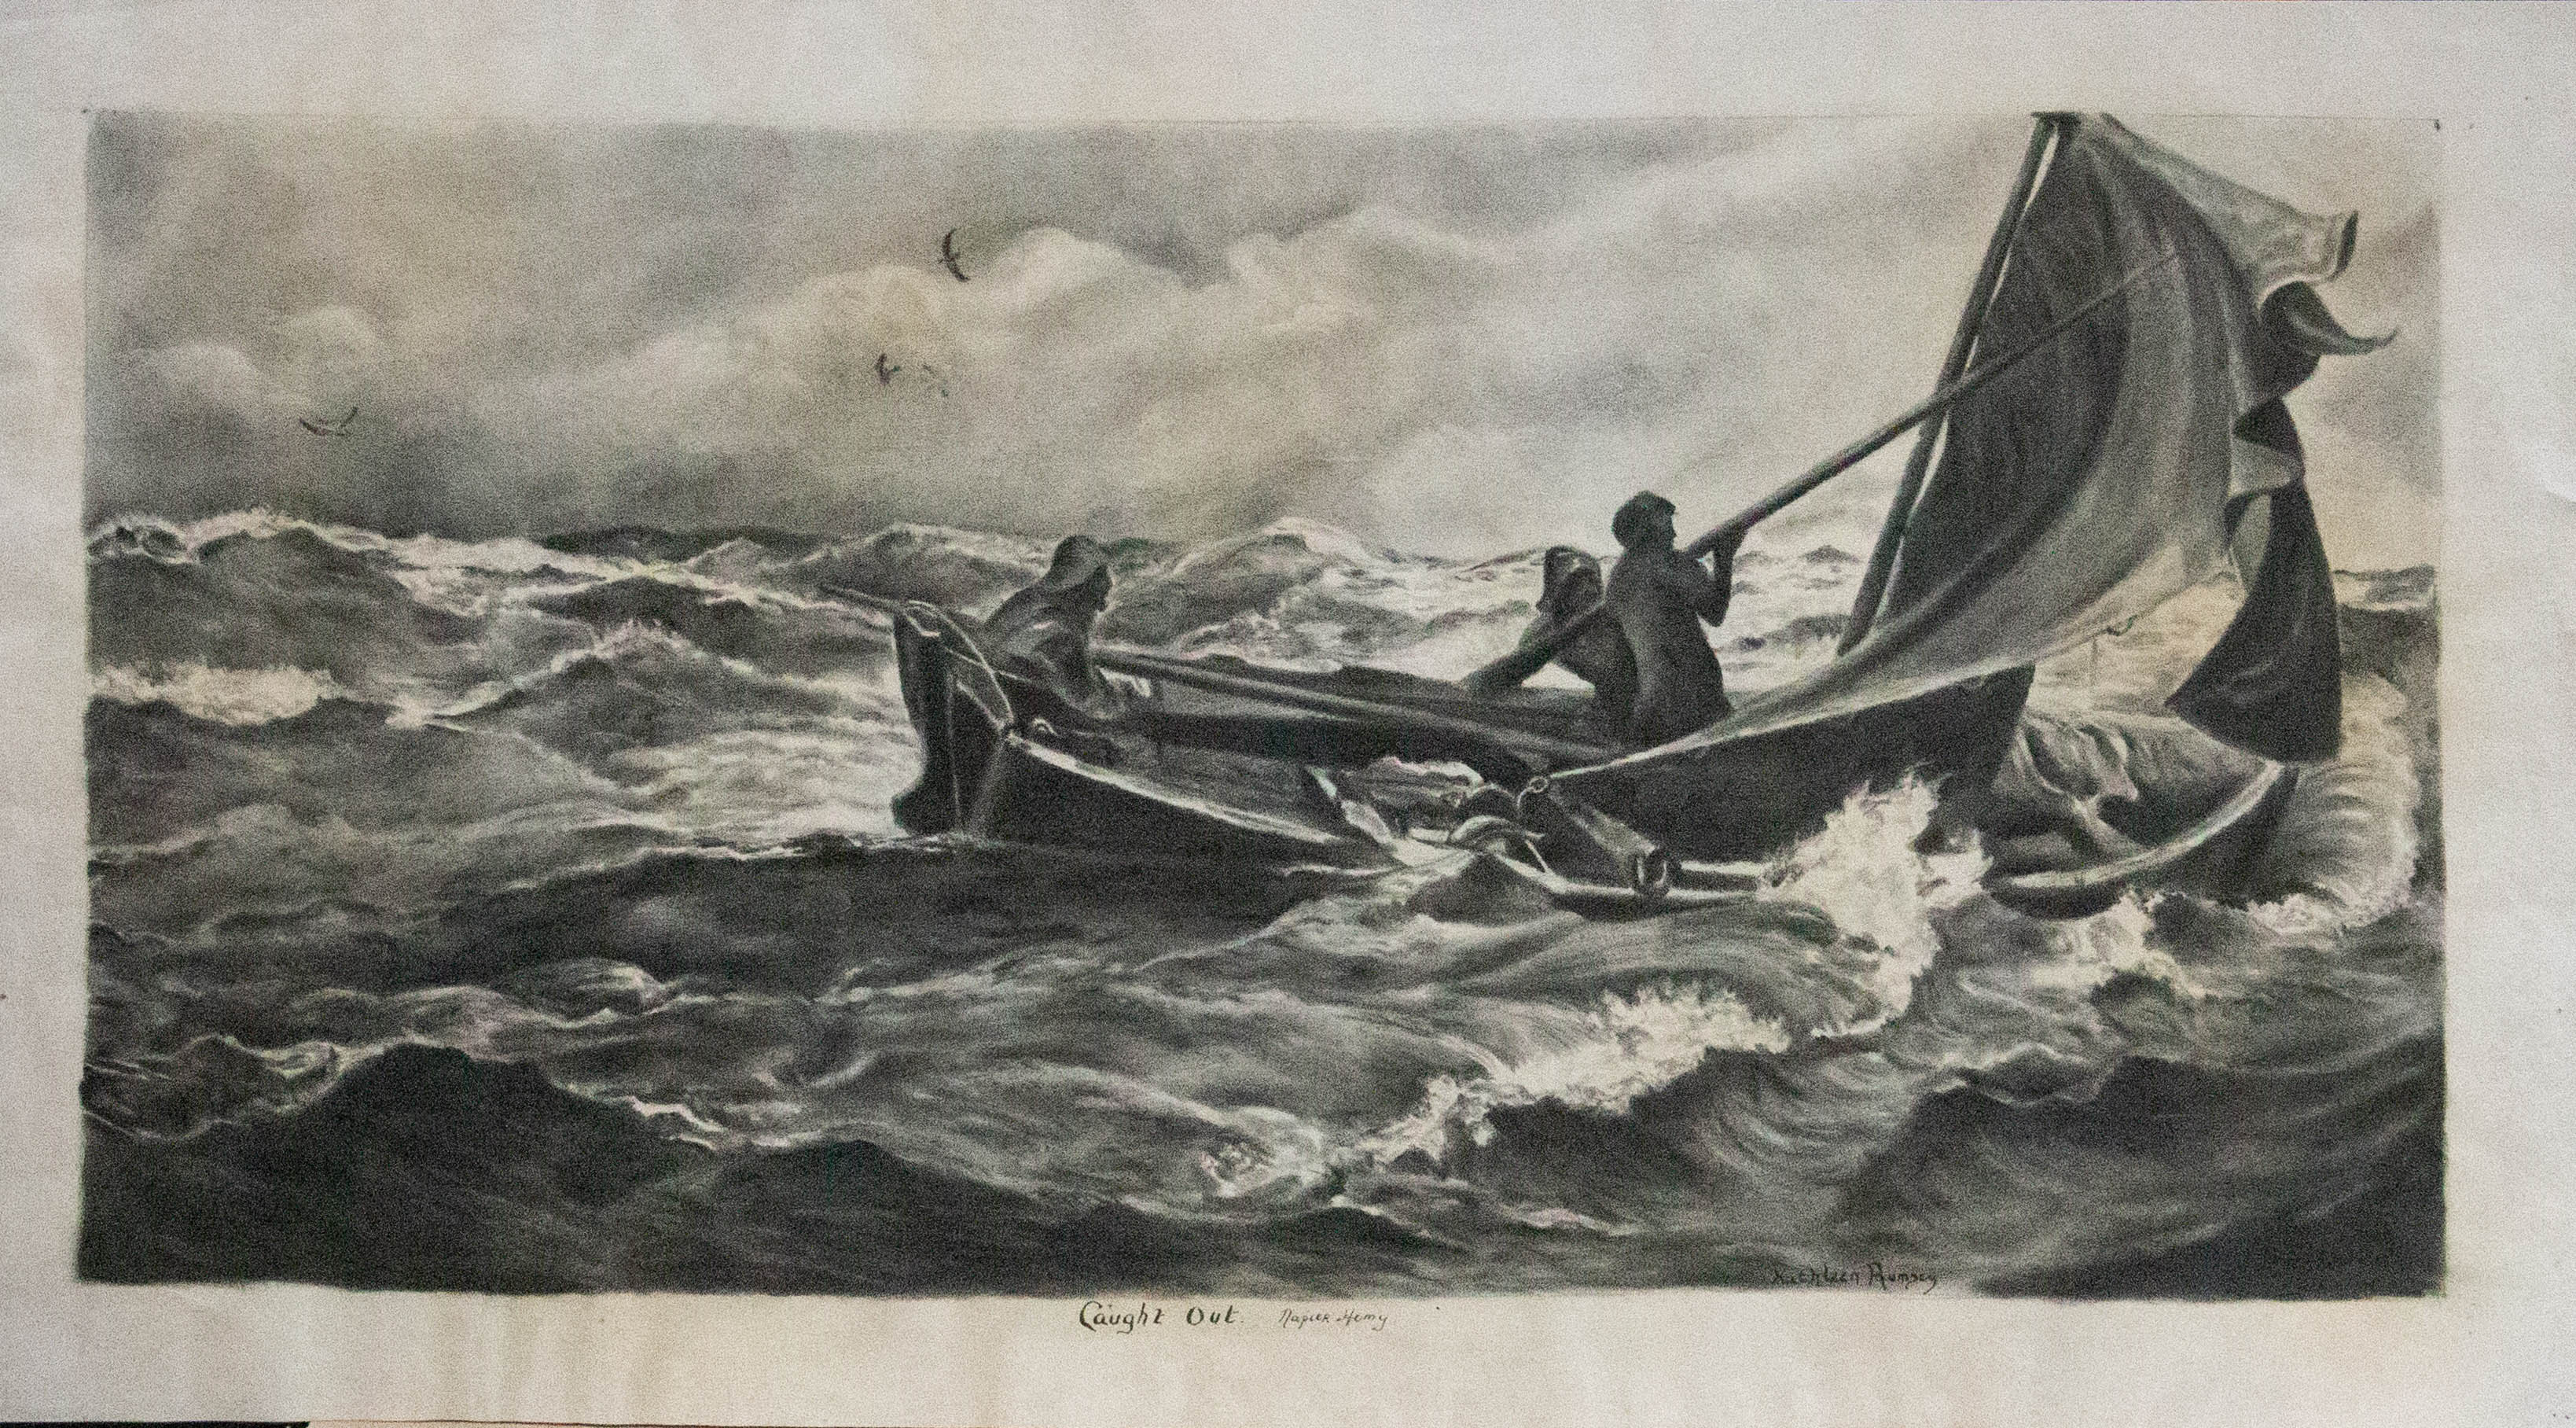 Kathleen Rumsey After Napier Hemy  - 20th Century Charcoal Drawing, Caught Out